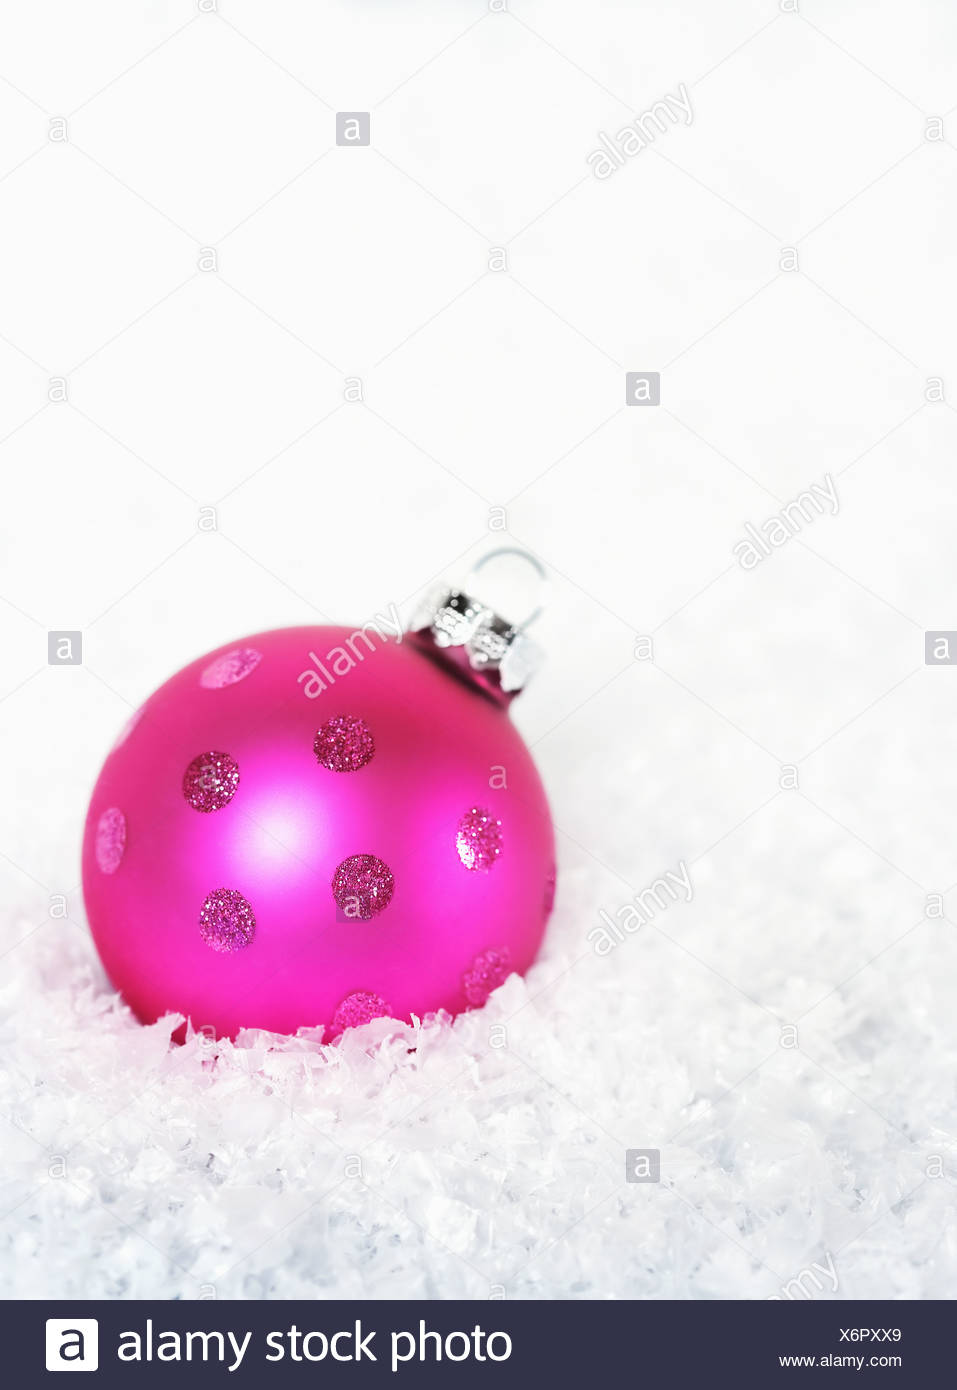 Pink Christmas bauble on snow - Stock Image